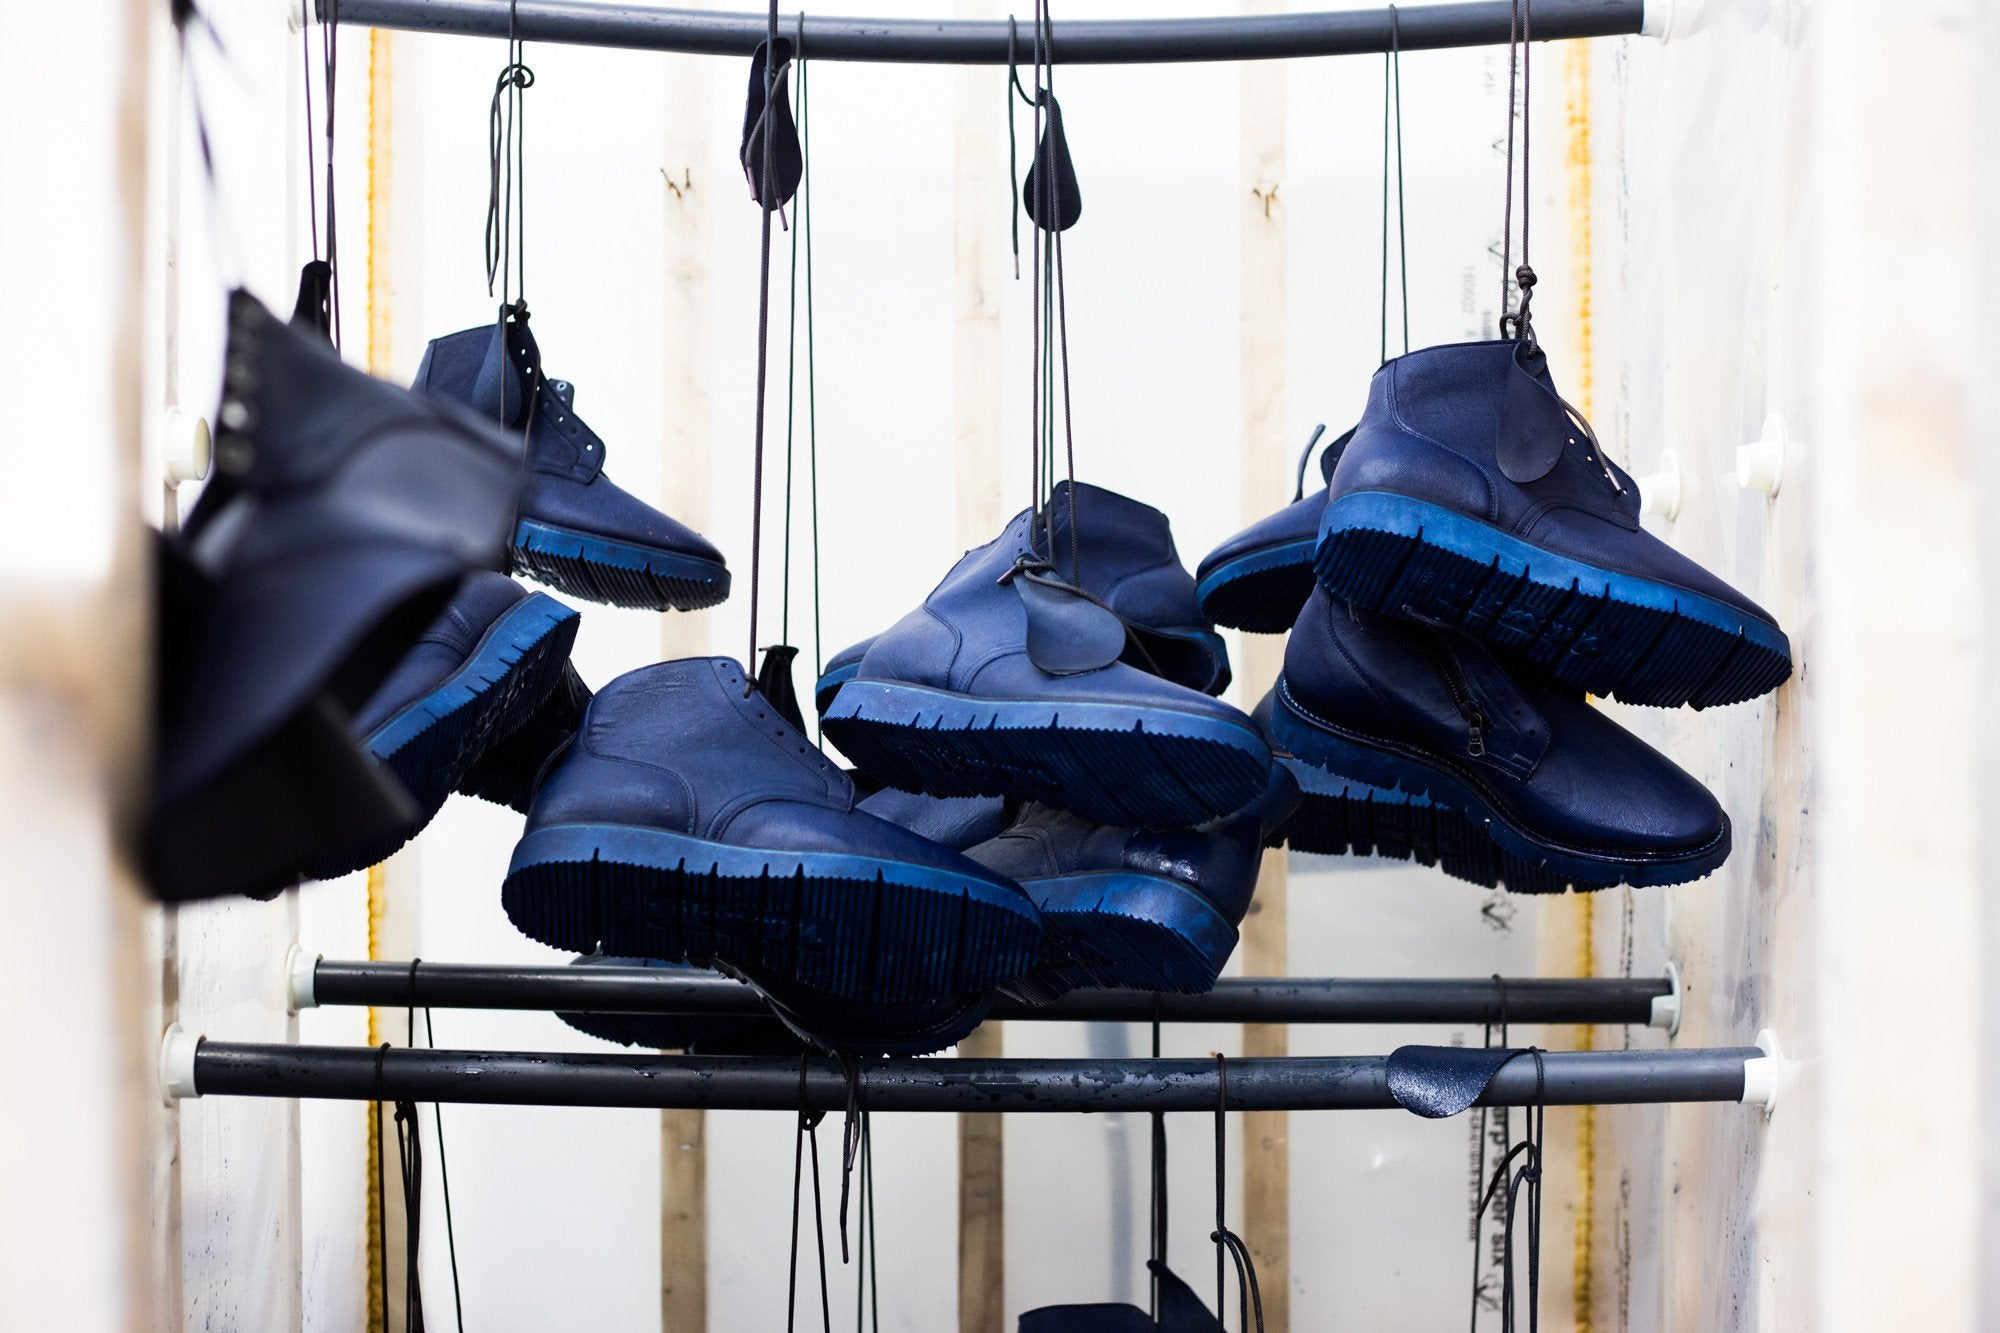 Https Blogs Journal 2018 11 30t120000 0800 Weekly Cut Engineer Iron Safety Boots Blue Leather Haven 10 Year Service 19v1484752833